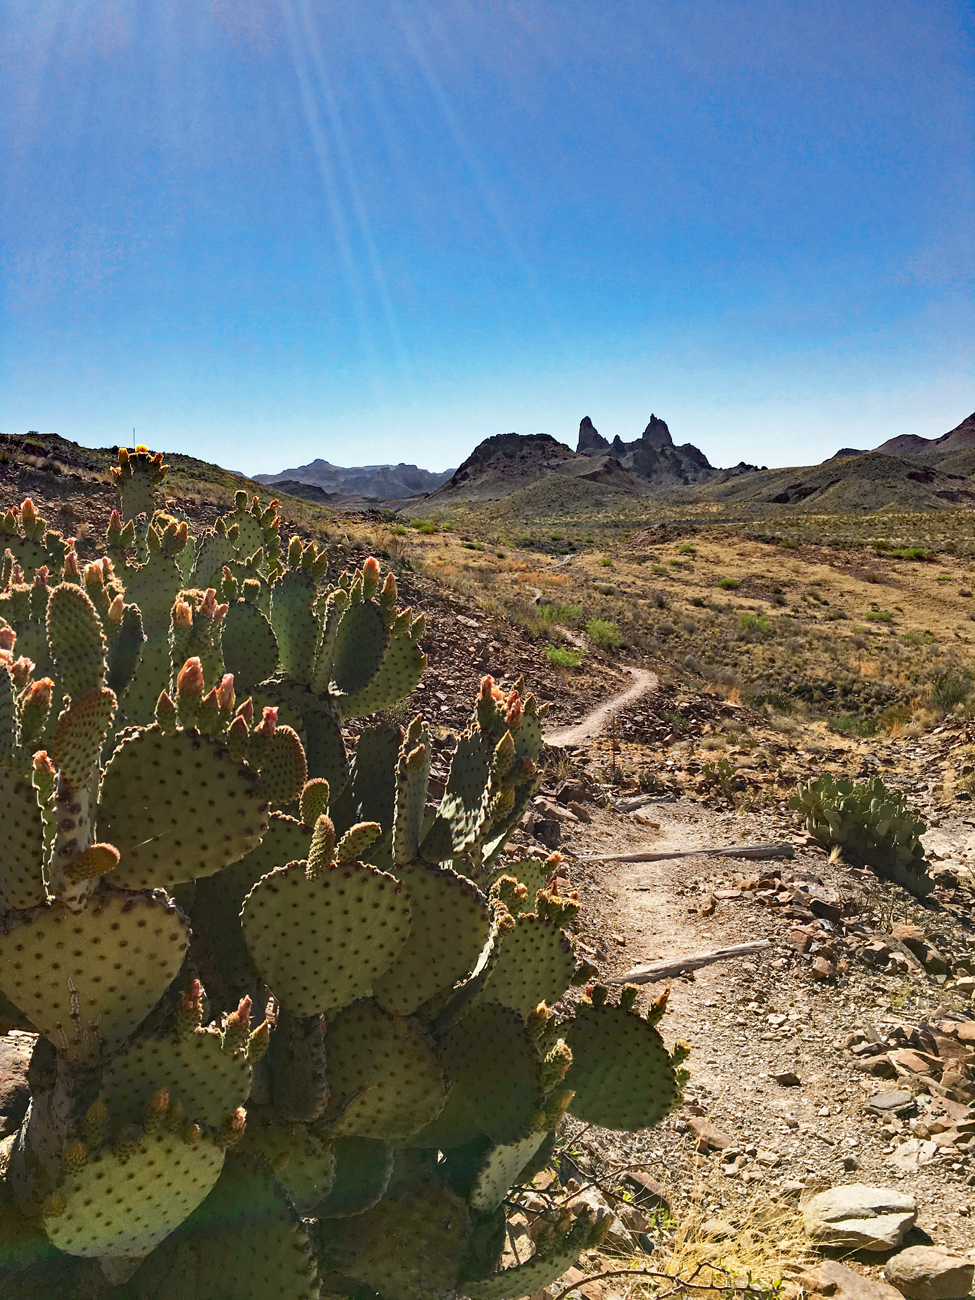 The trail to Mule Ears Spring with a species of prickly pear cactus in the foreground and the Mule Ears rock formation in the distance in Big Bend National Park